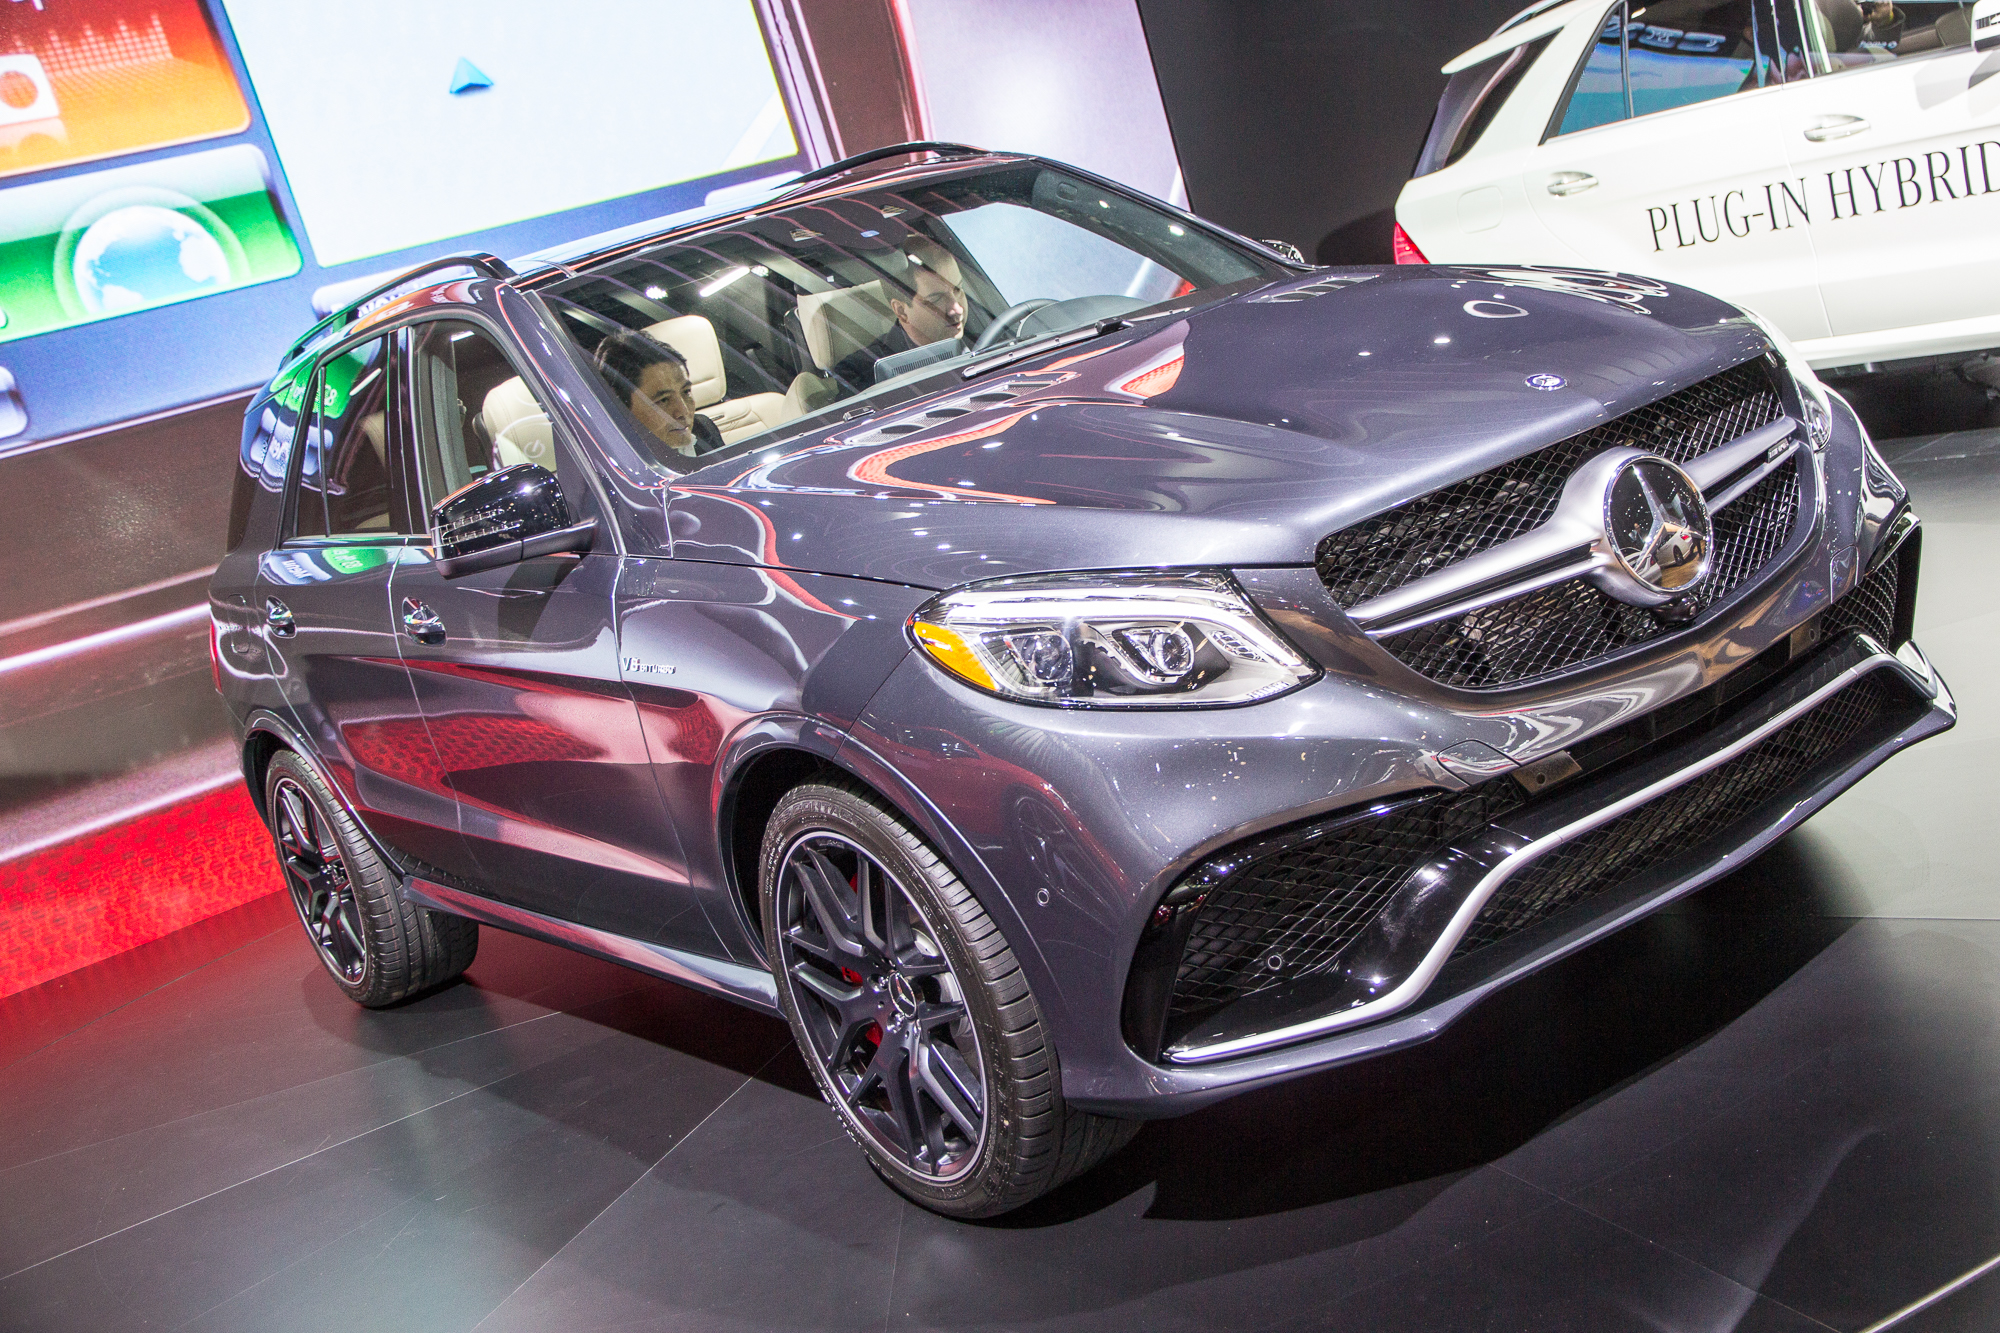 2018 Mercedes Benz GLE 63 AMG photo - 1